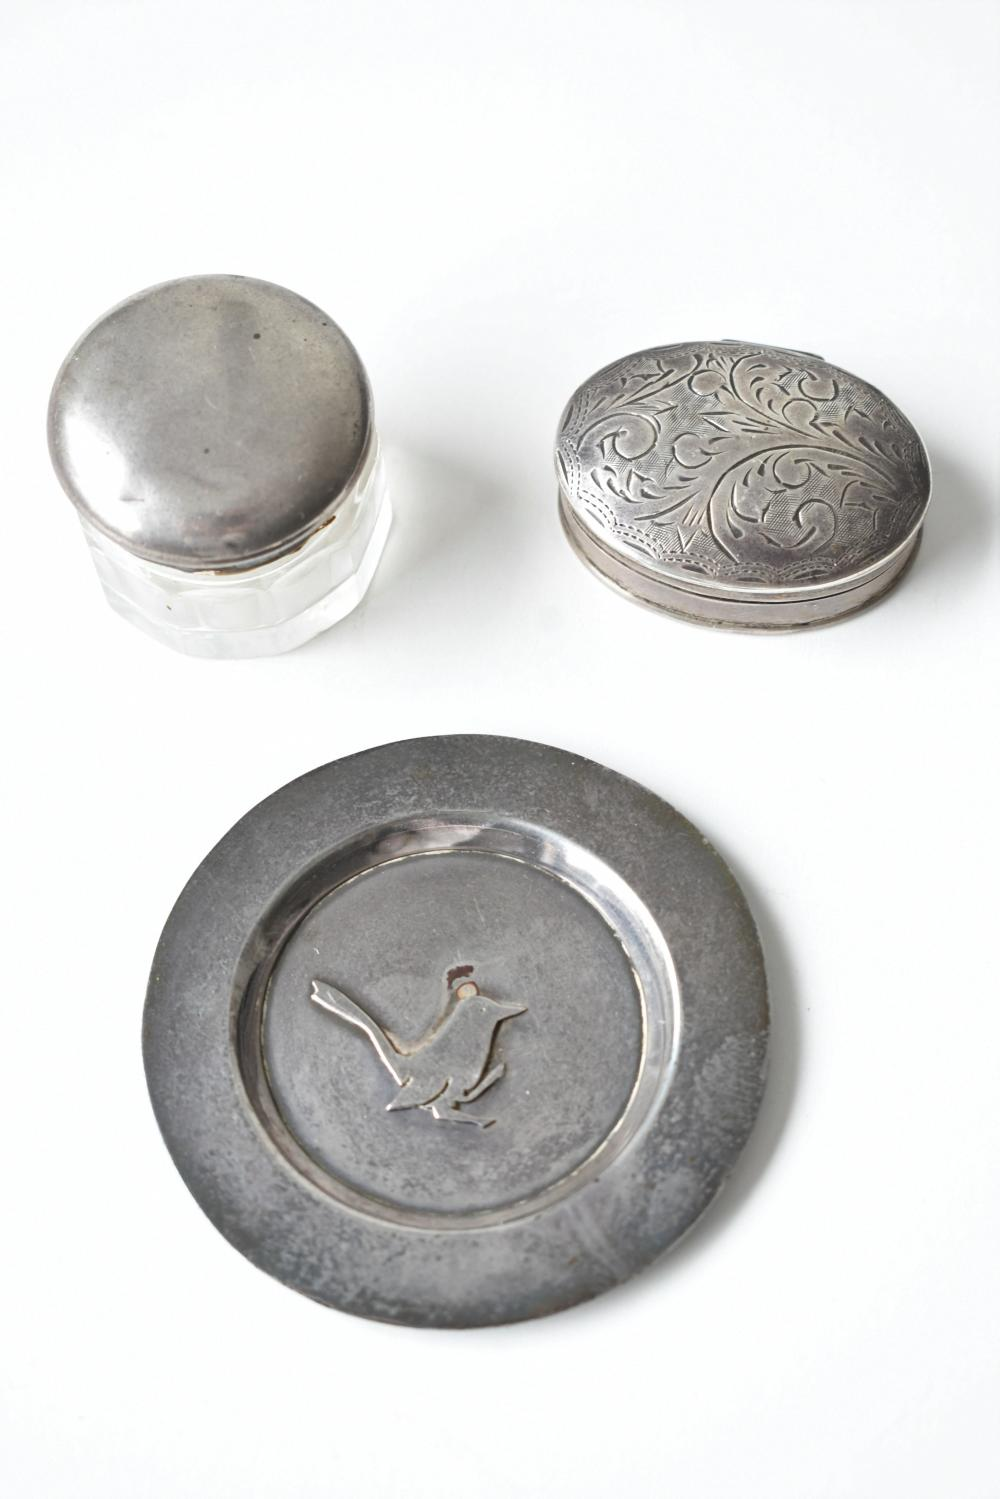 3 small Sterling silver items, plate diameter 6 cm. (2.36 in.)